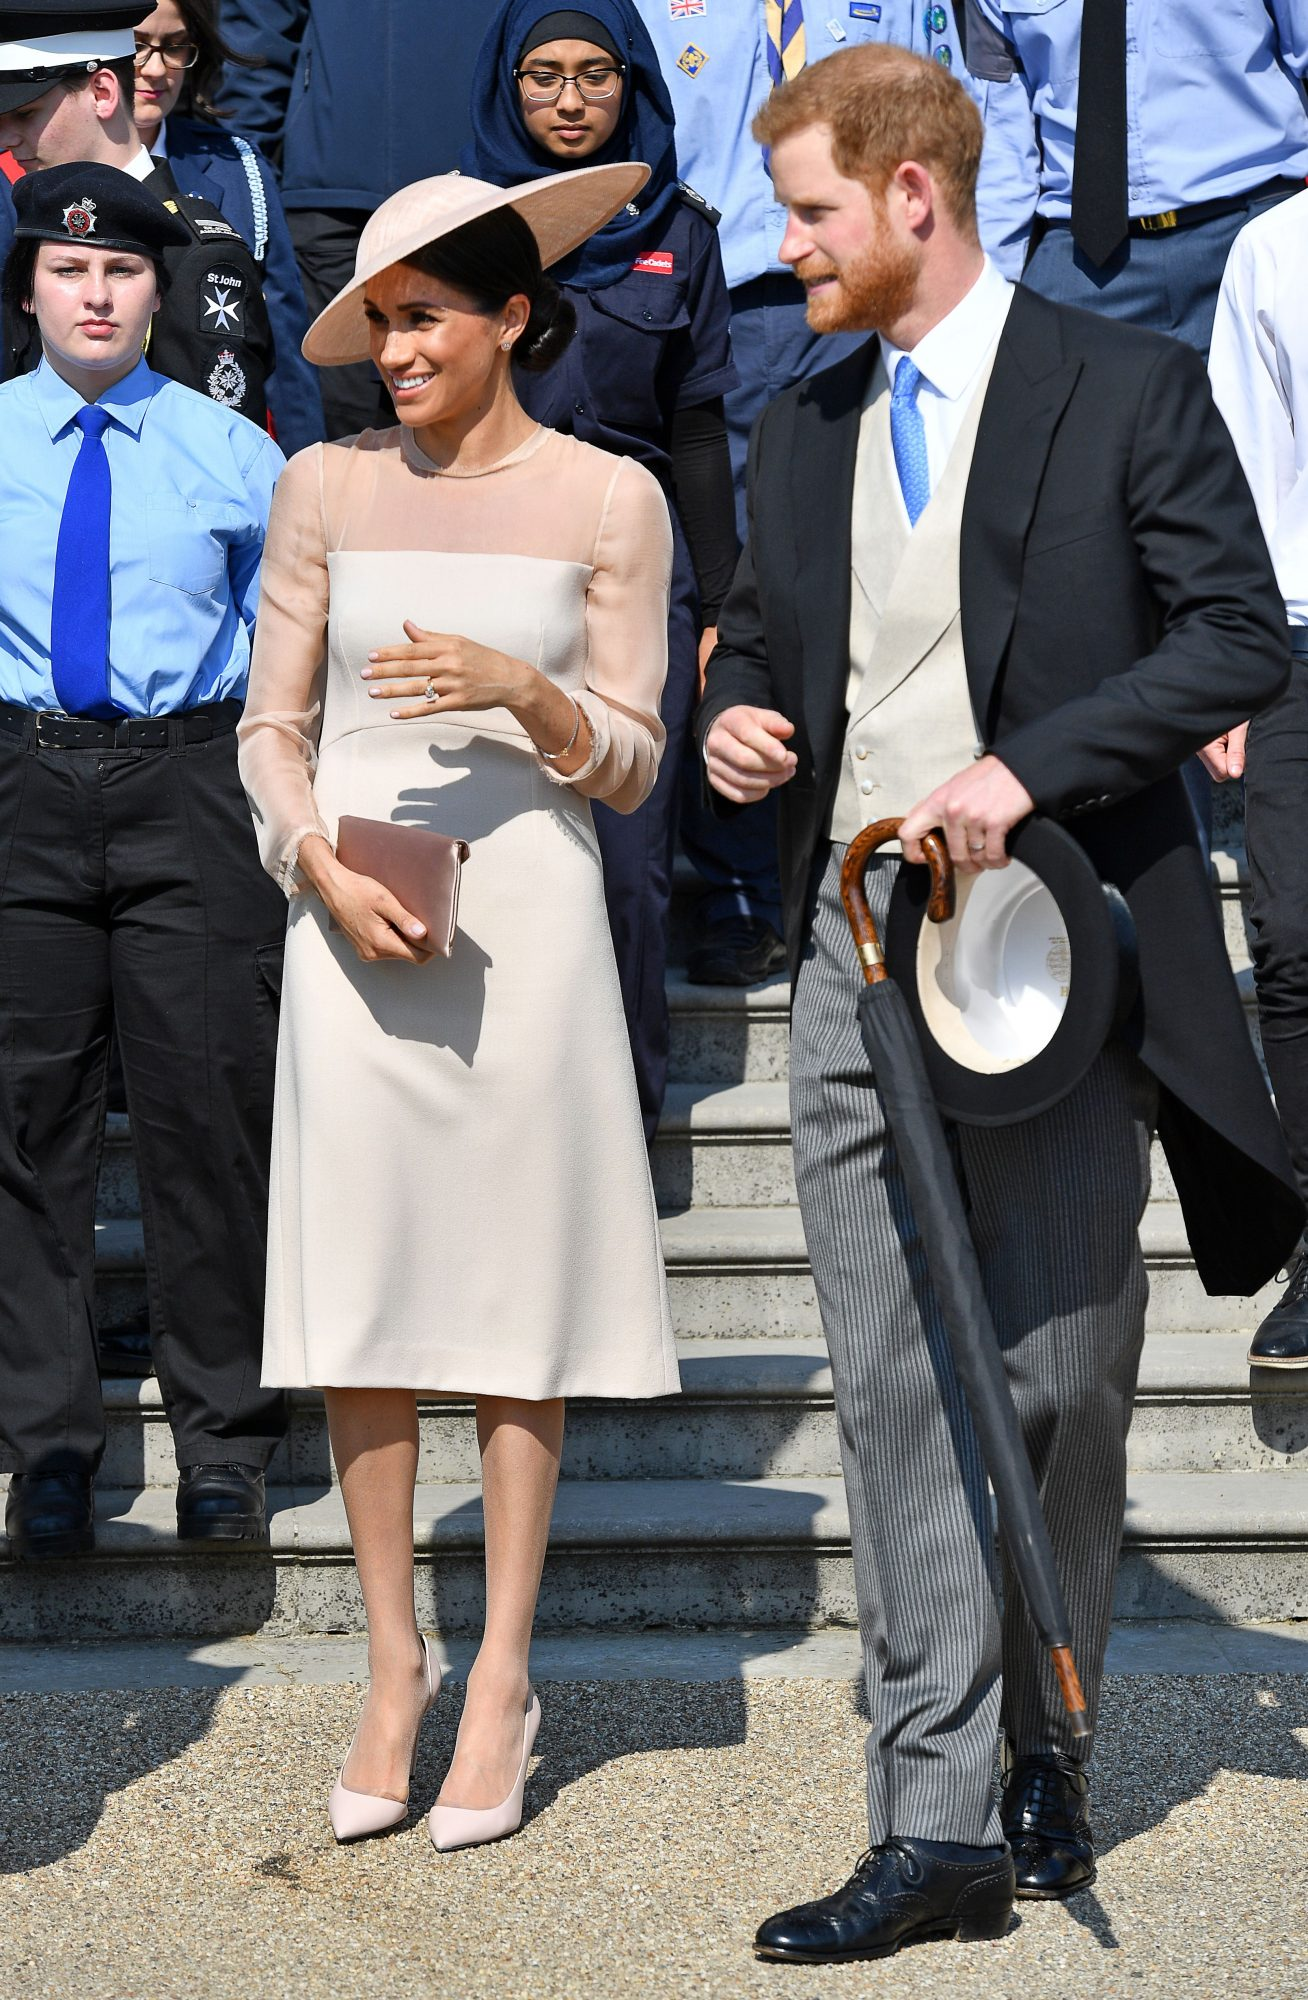 THE NEW DUKE AND DUCHESS OF SUSSEX